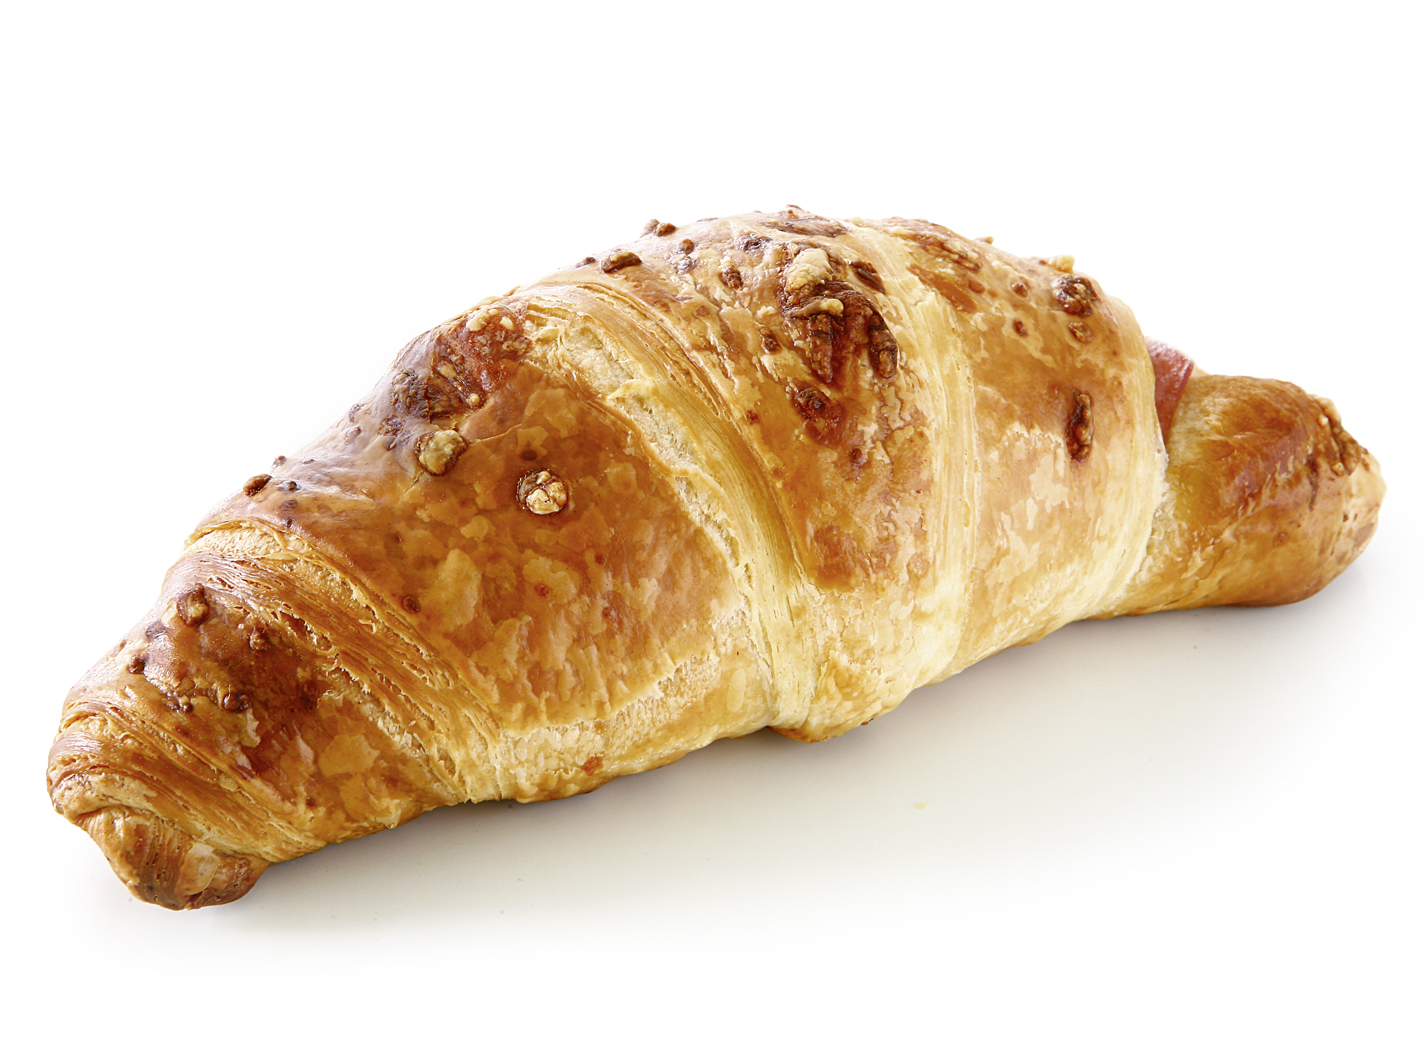 Ham & Cheese Croissant (whole slice) - Dough pastry/ butter croissant, filled with a whole ham slice and original Dutch Gouda cheese